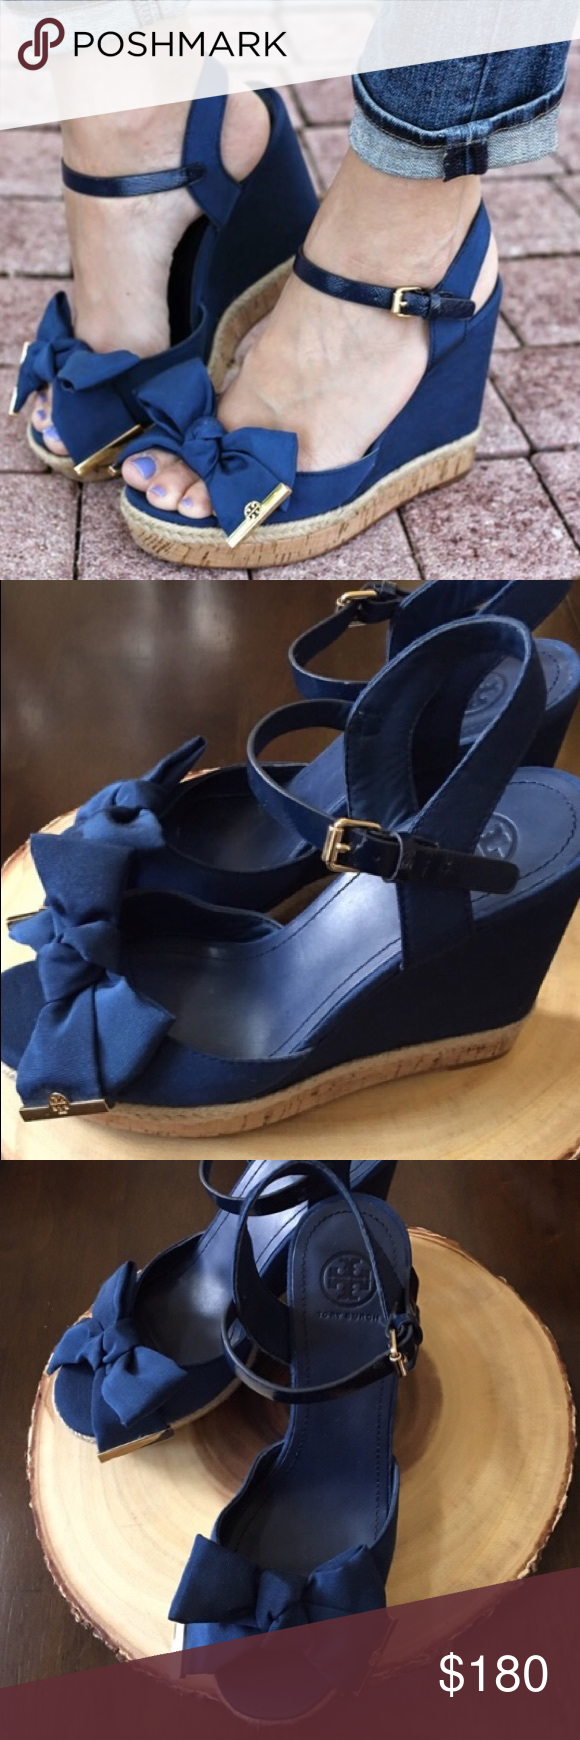 8ccf430c63a Tory Burch Penny Wedges NWT! Bought but never worn. My loss your gain!